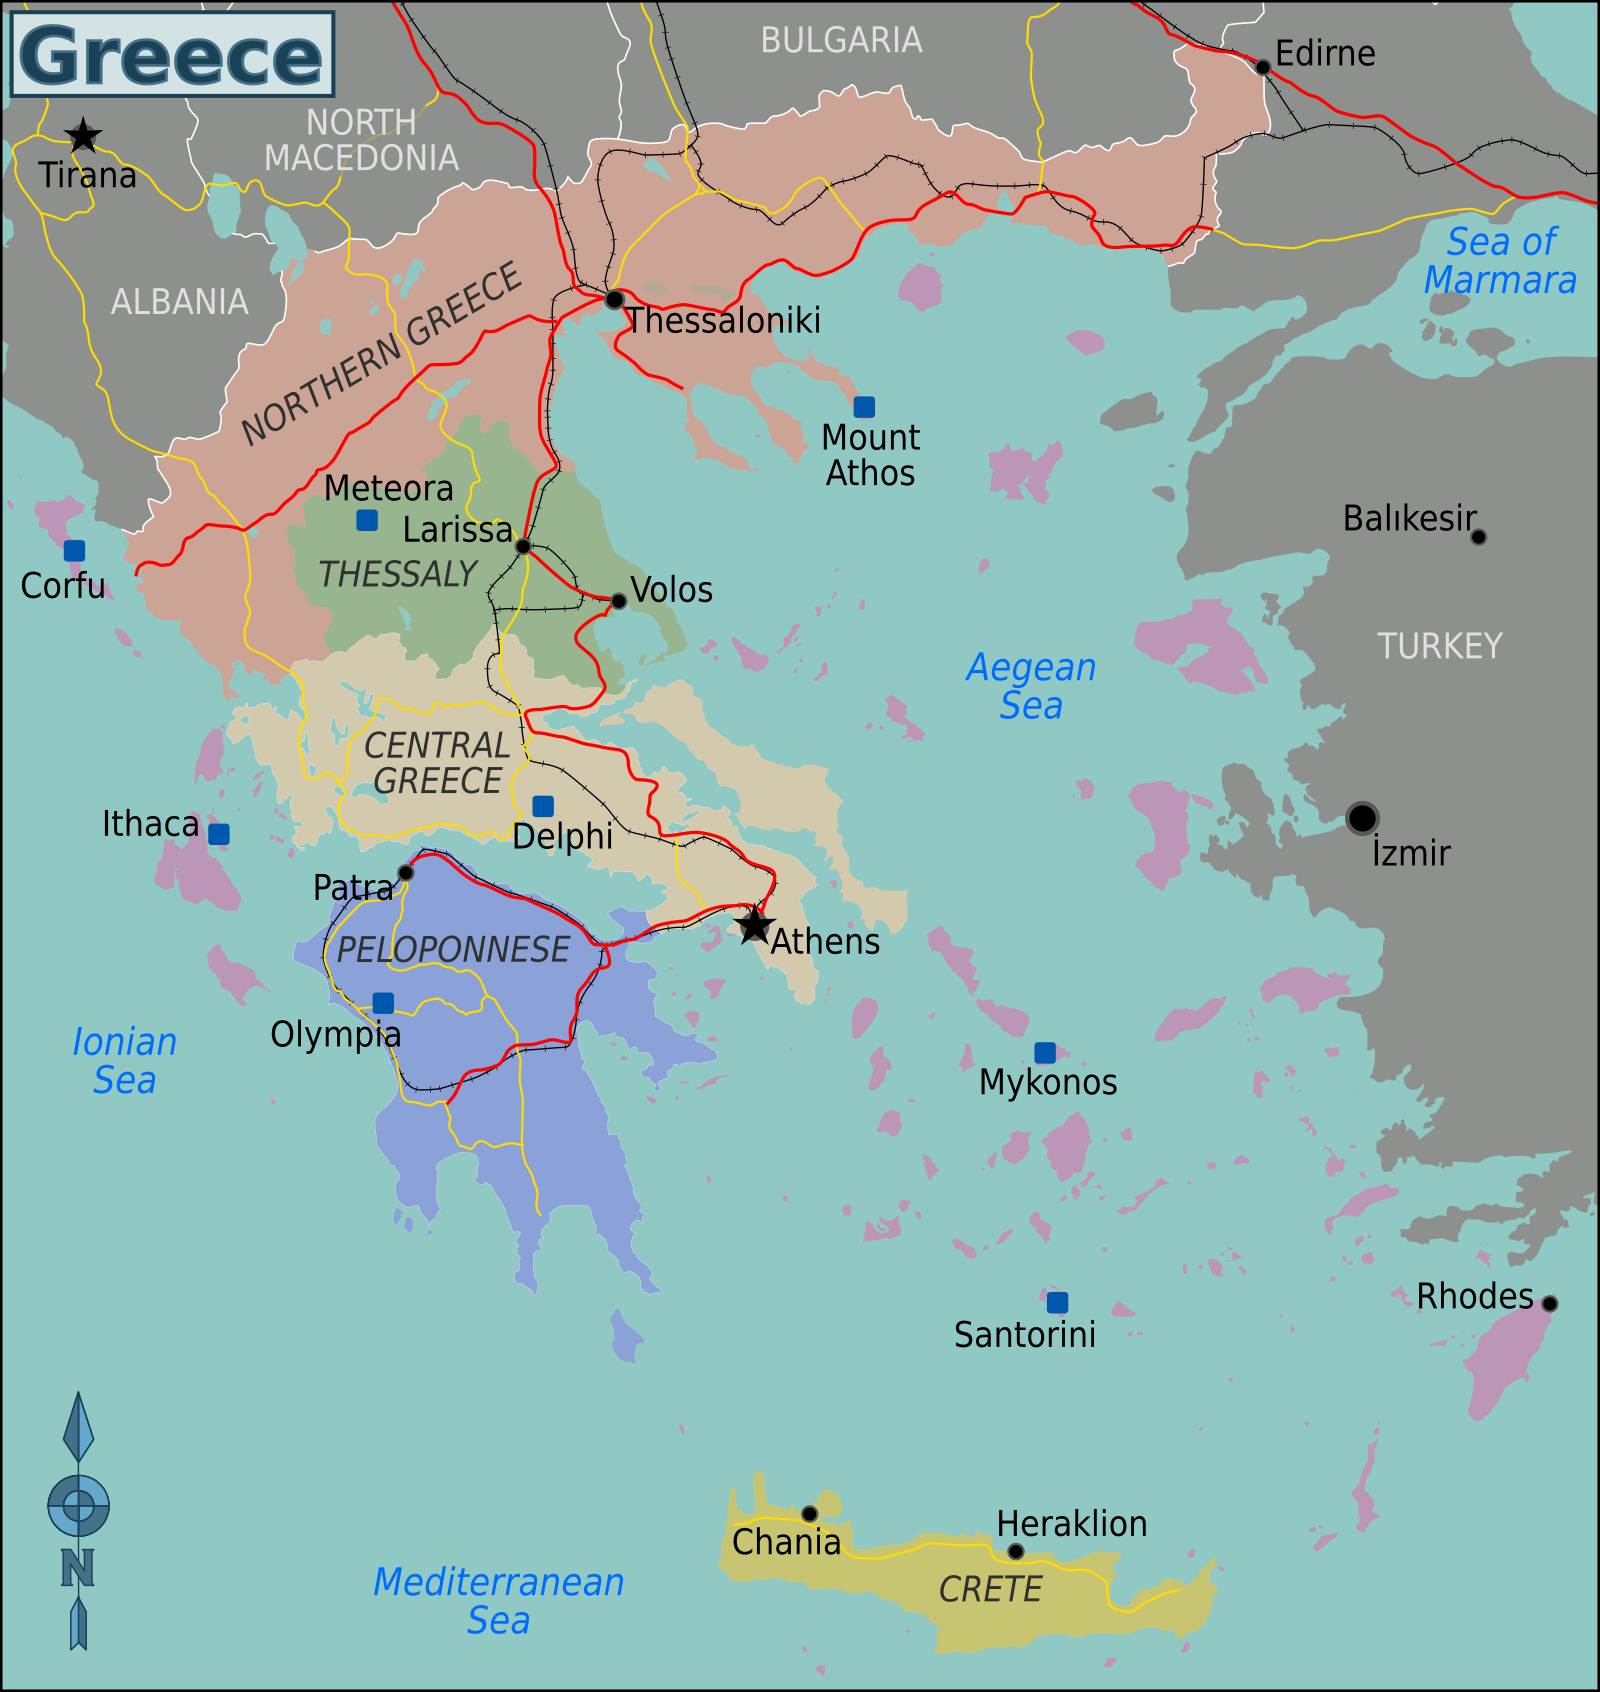 Filegreece wv region map eng wikimedia commons filegreece wv region map eng publicscrutiny Choice Image